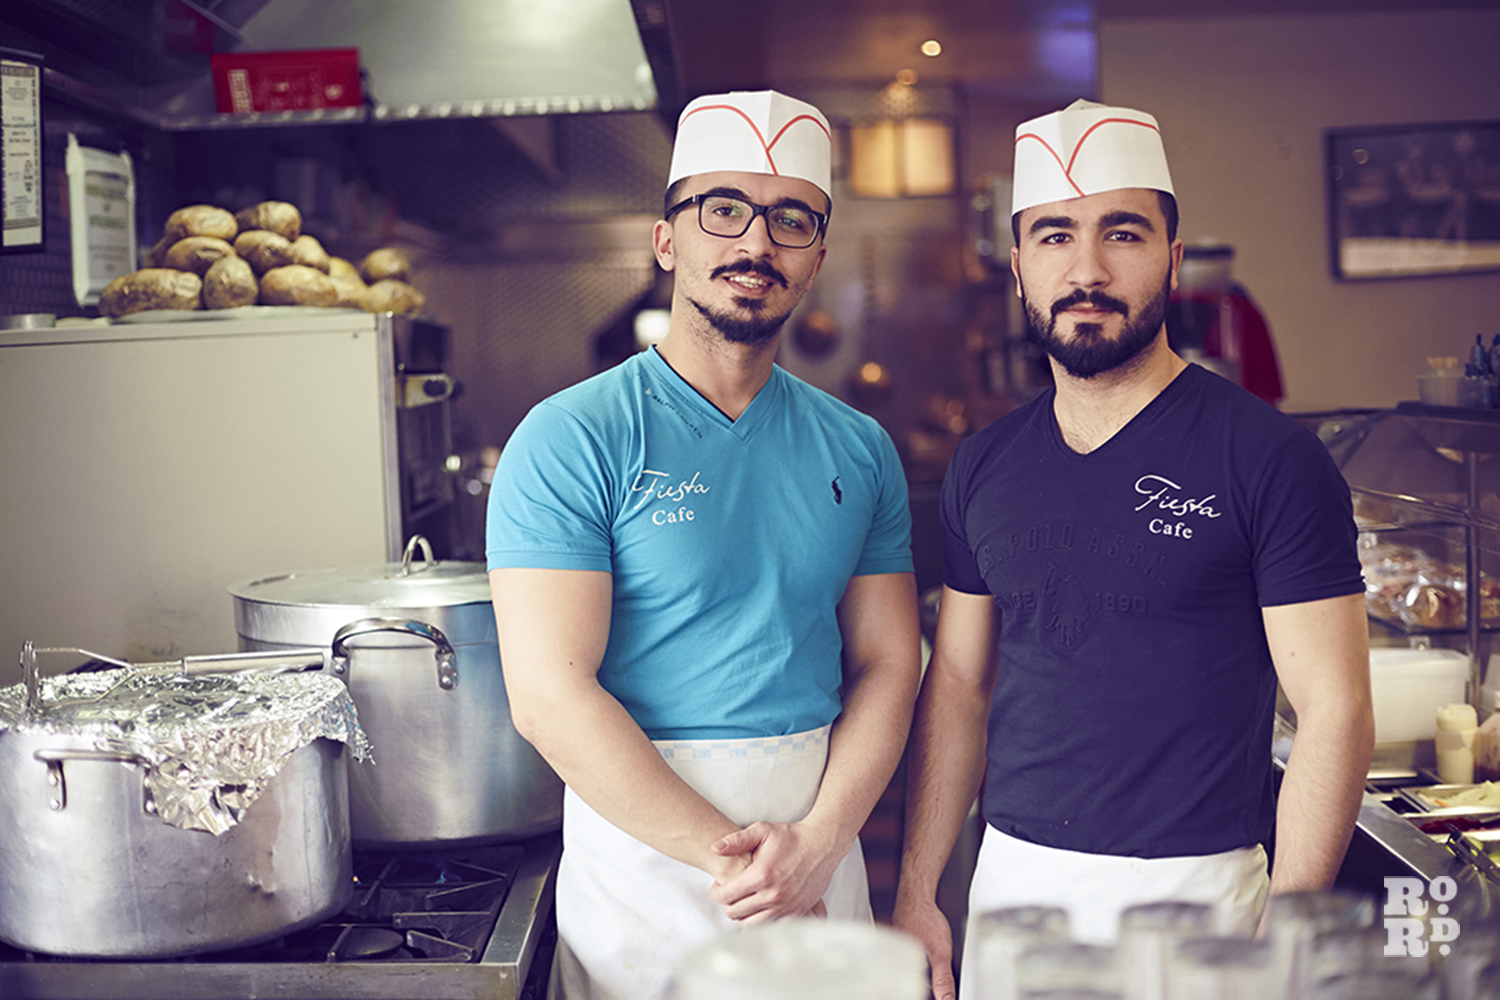 Two chefs at Fiesta cafe on Roman Road, East London